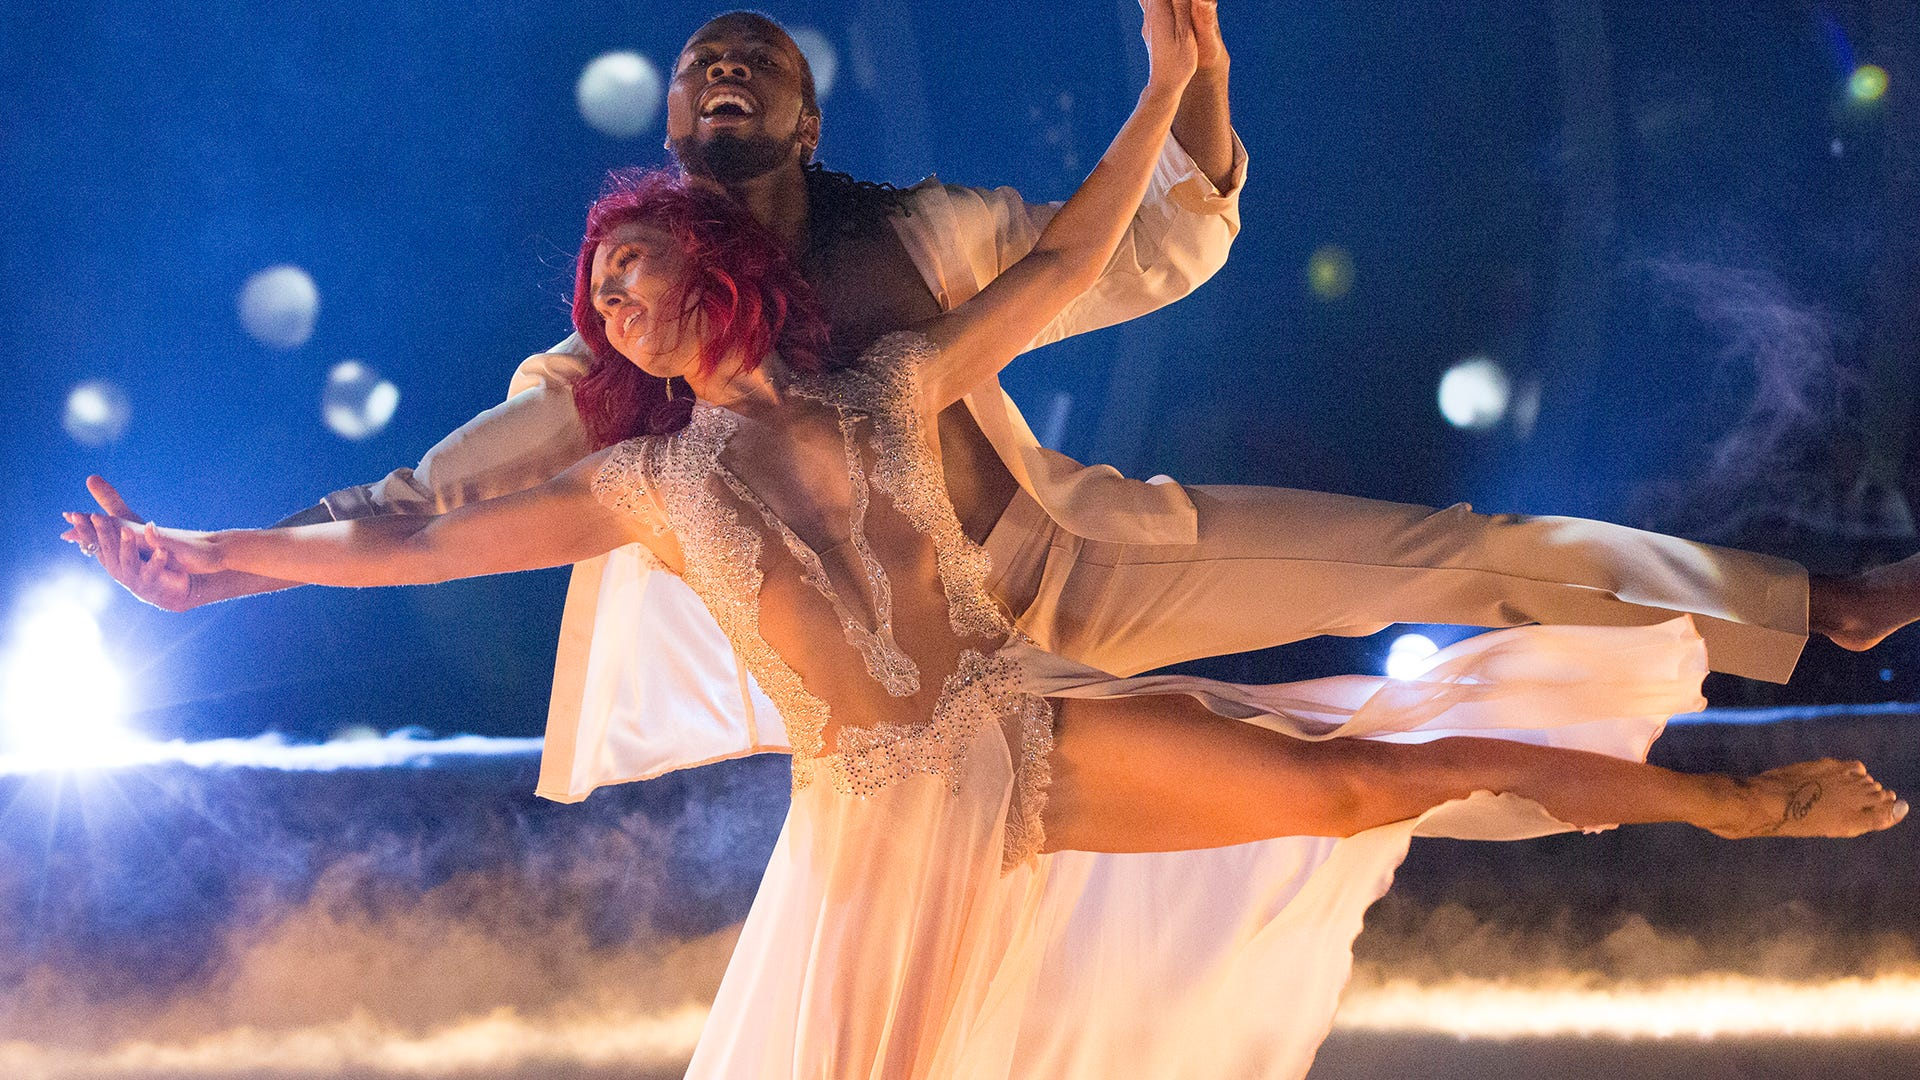 Josh Norman and Sharna Burgess, Dancing with the Stars